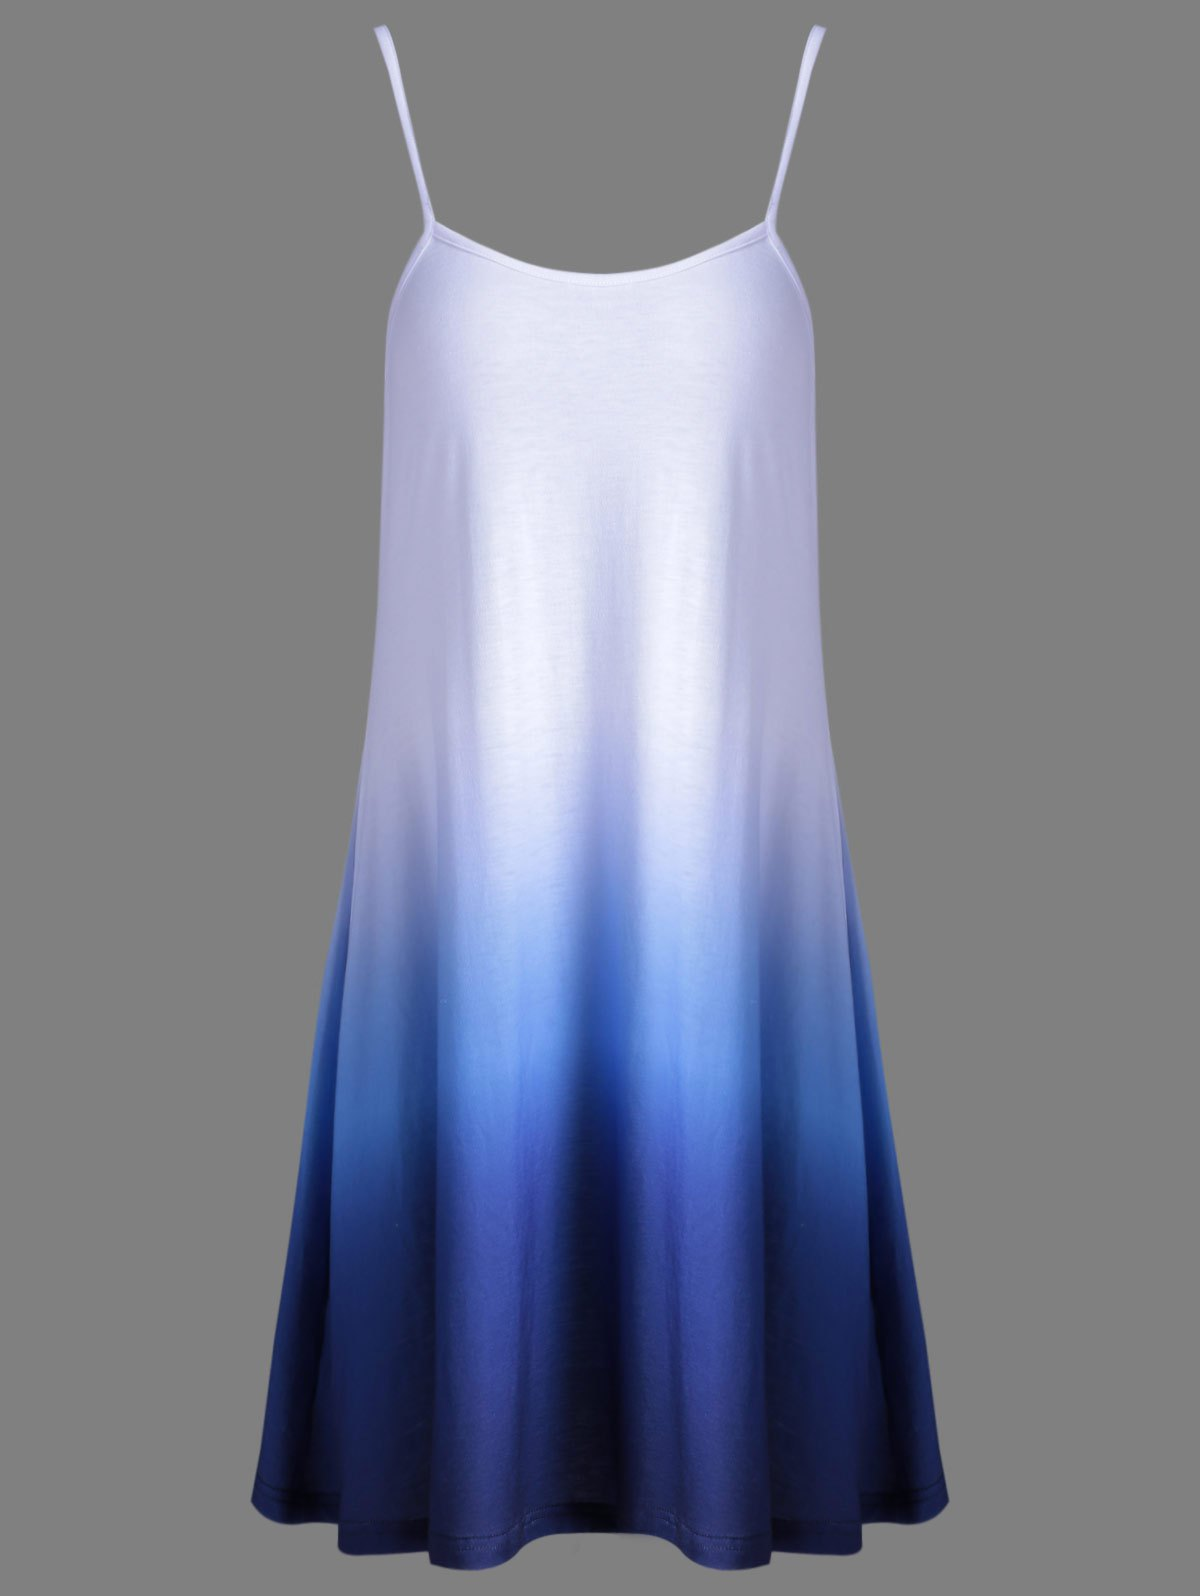 Fashion Ombre Cami Dress For Women